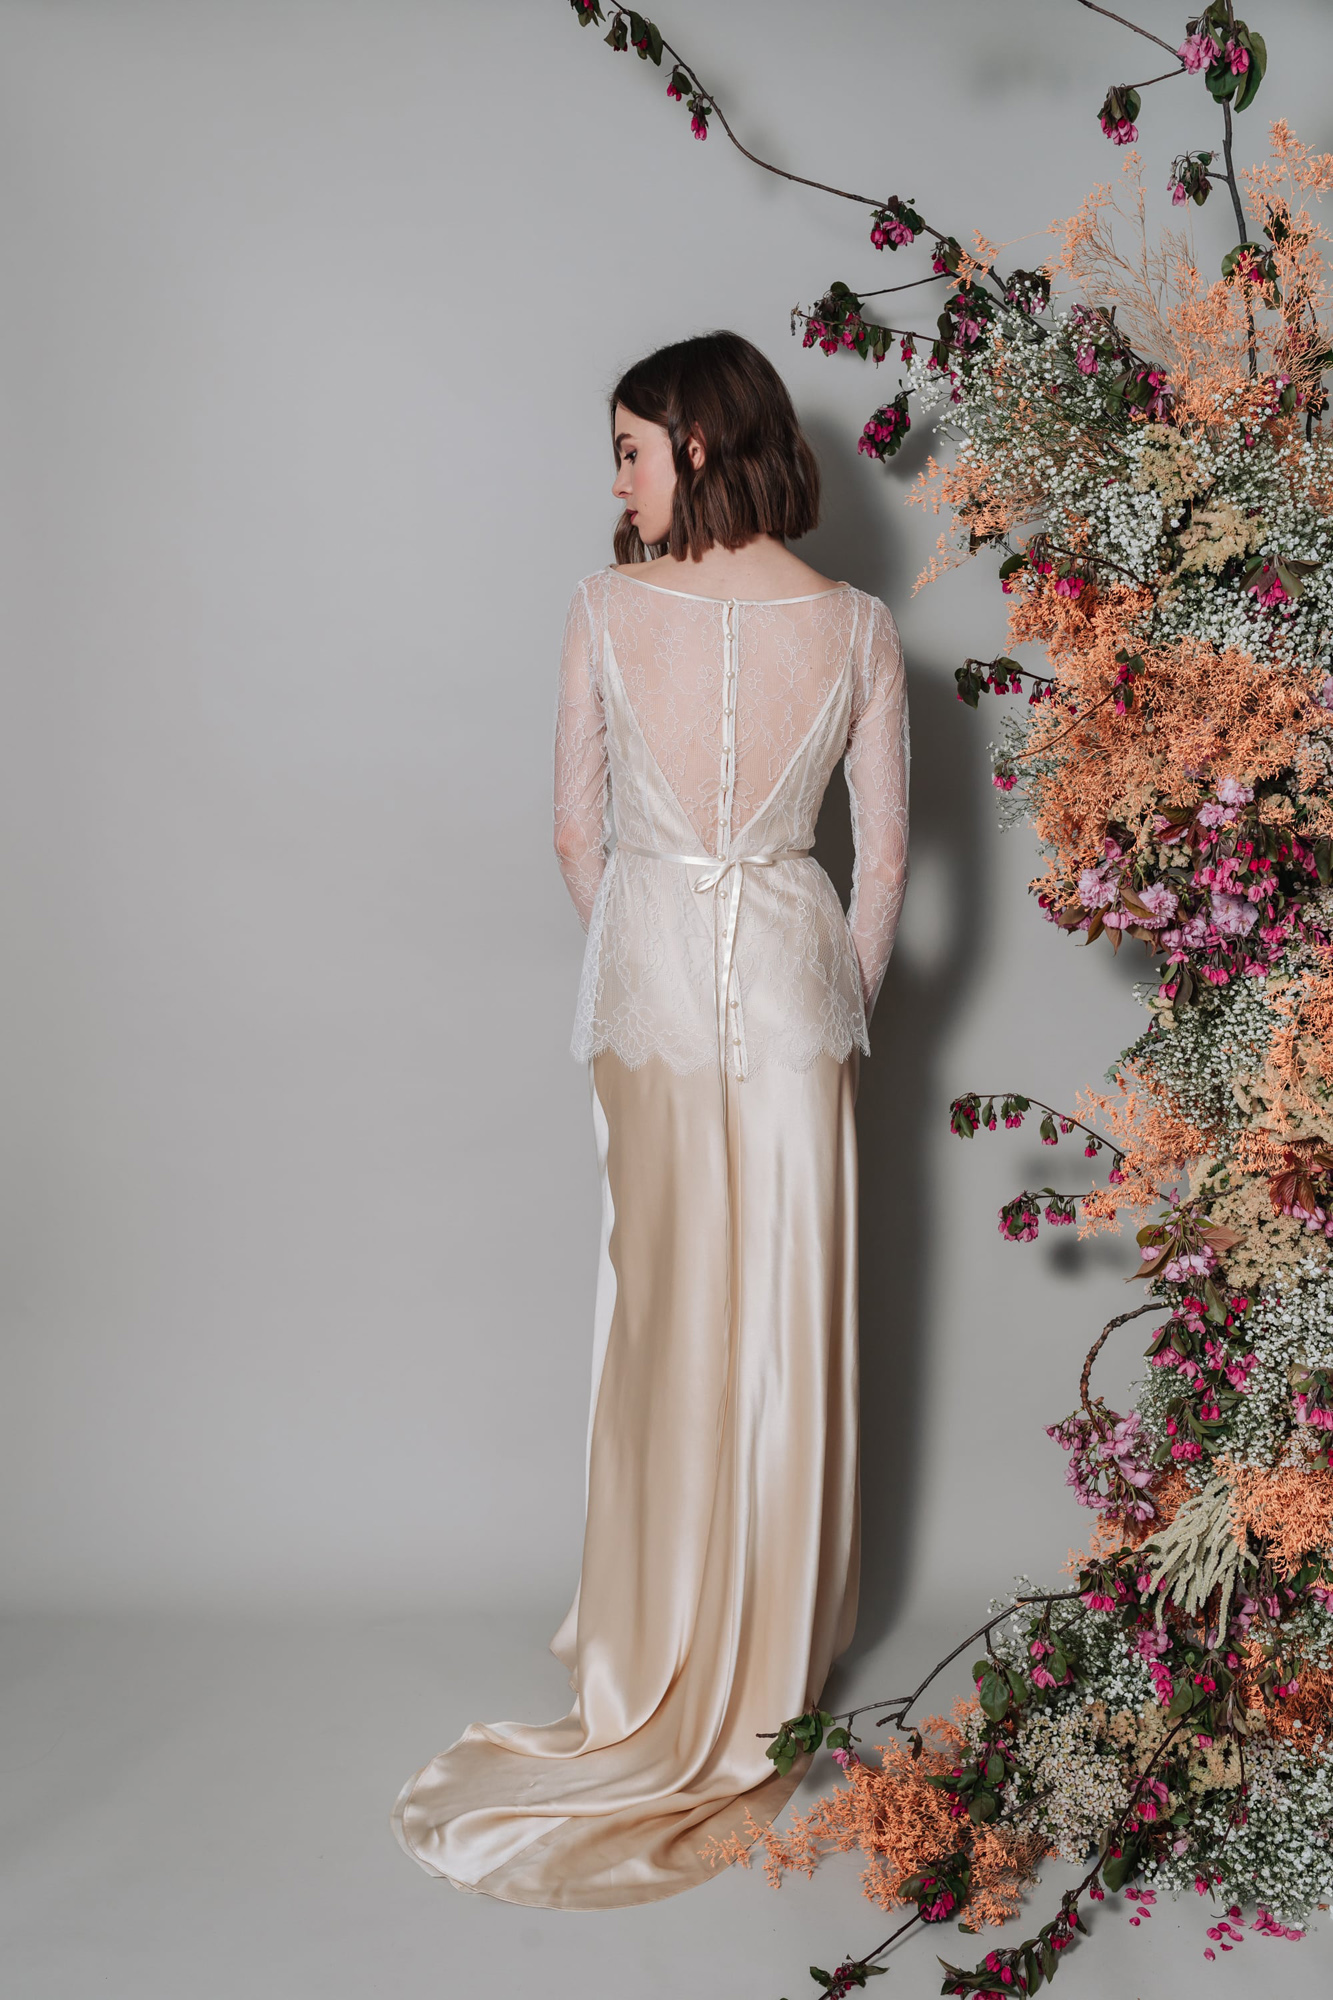 Kate-Beaumont-Sheffield-Thistle-Bridal-Separates-Two-Piece-Lace-Silk-Wedding-Gown-8.jpg